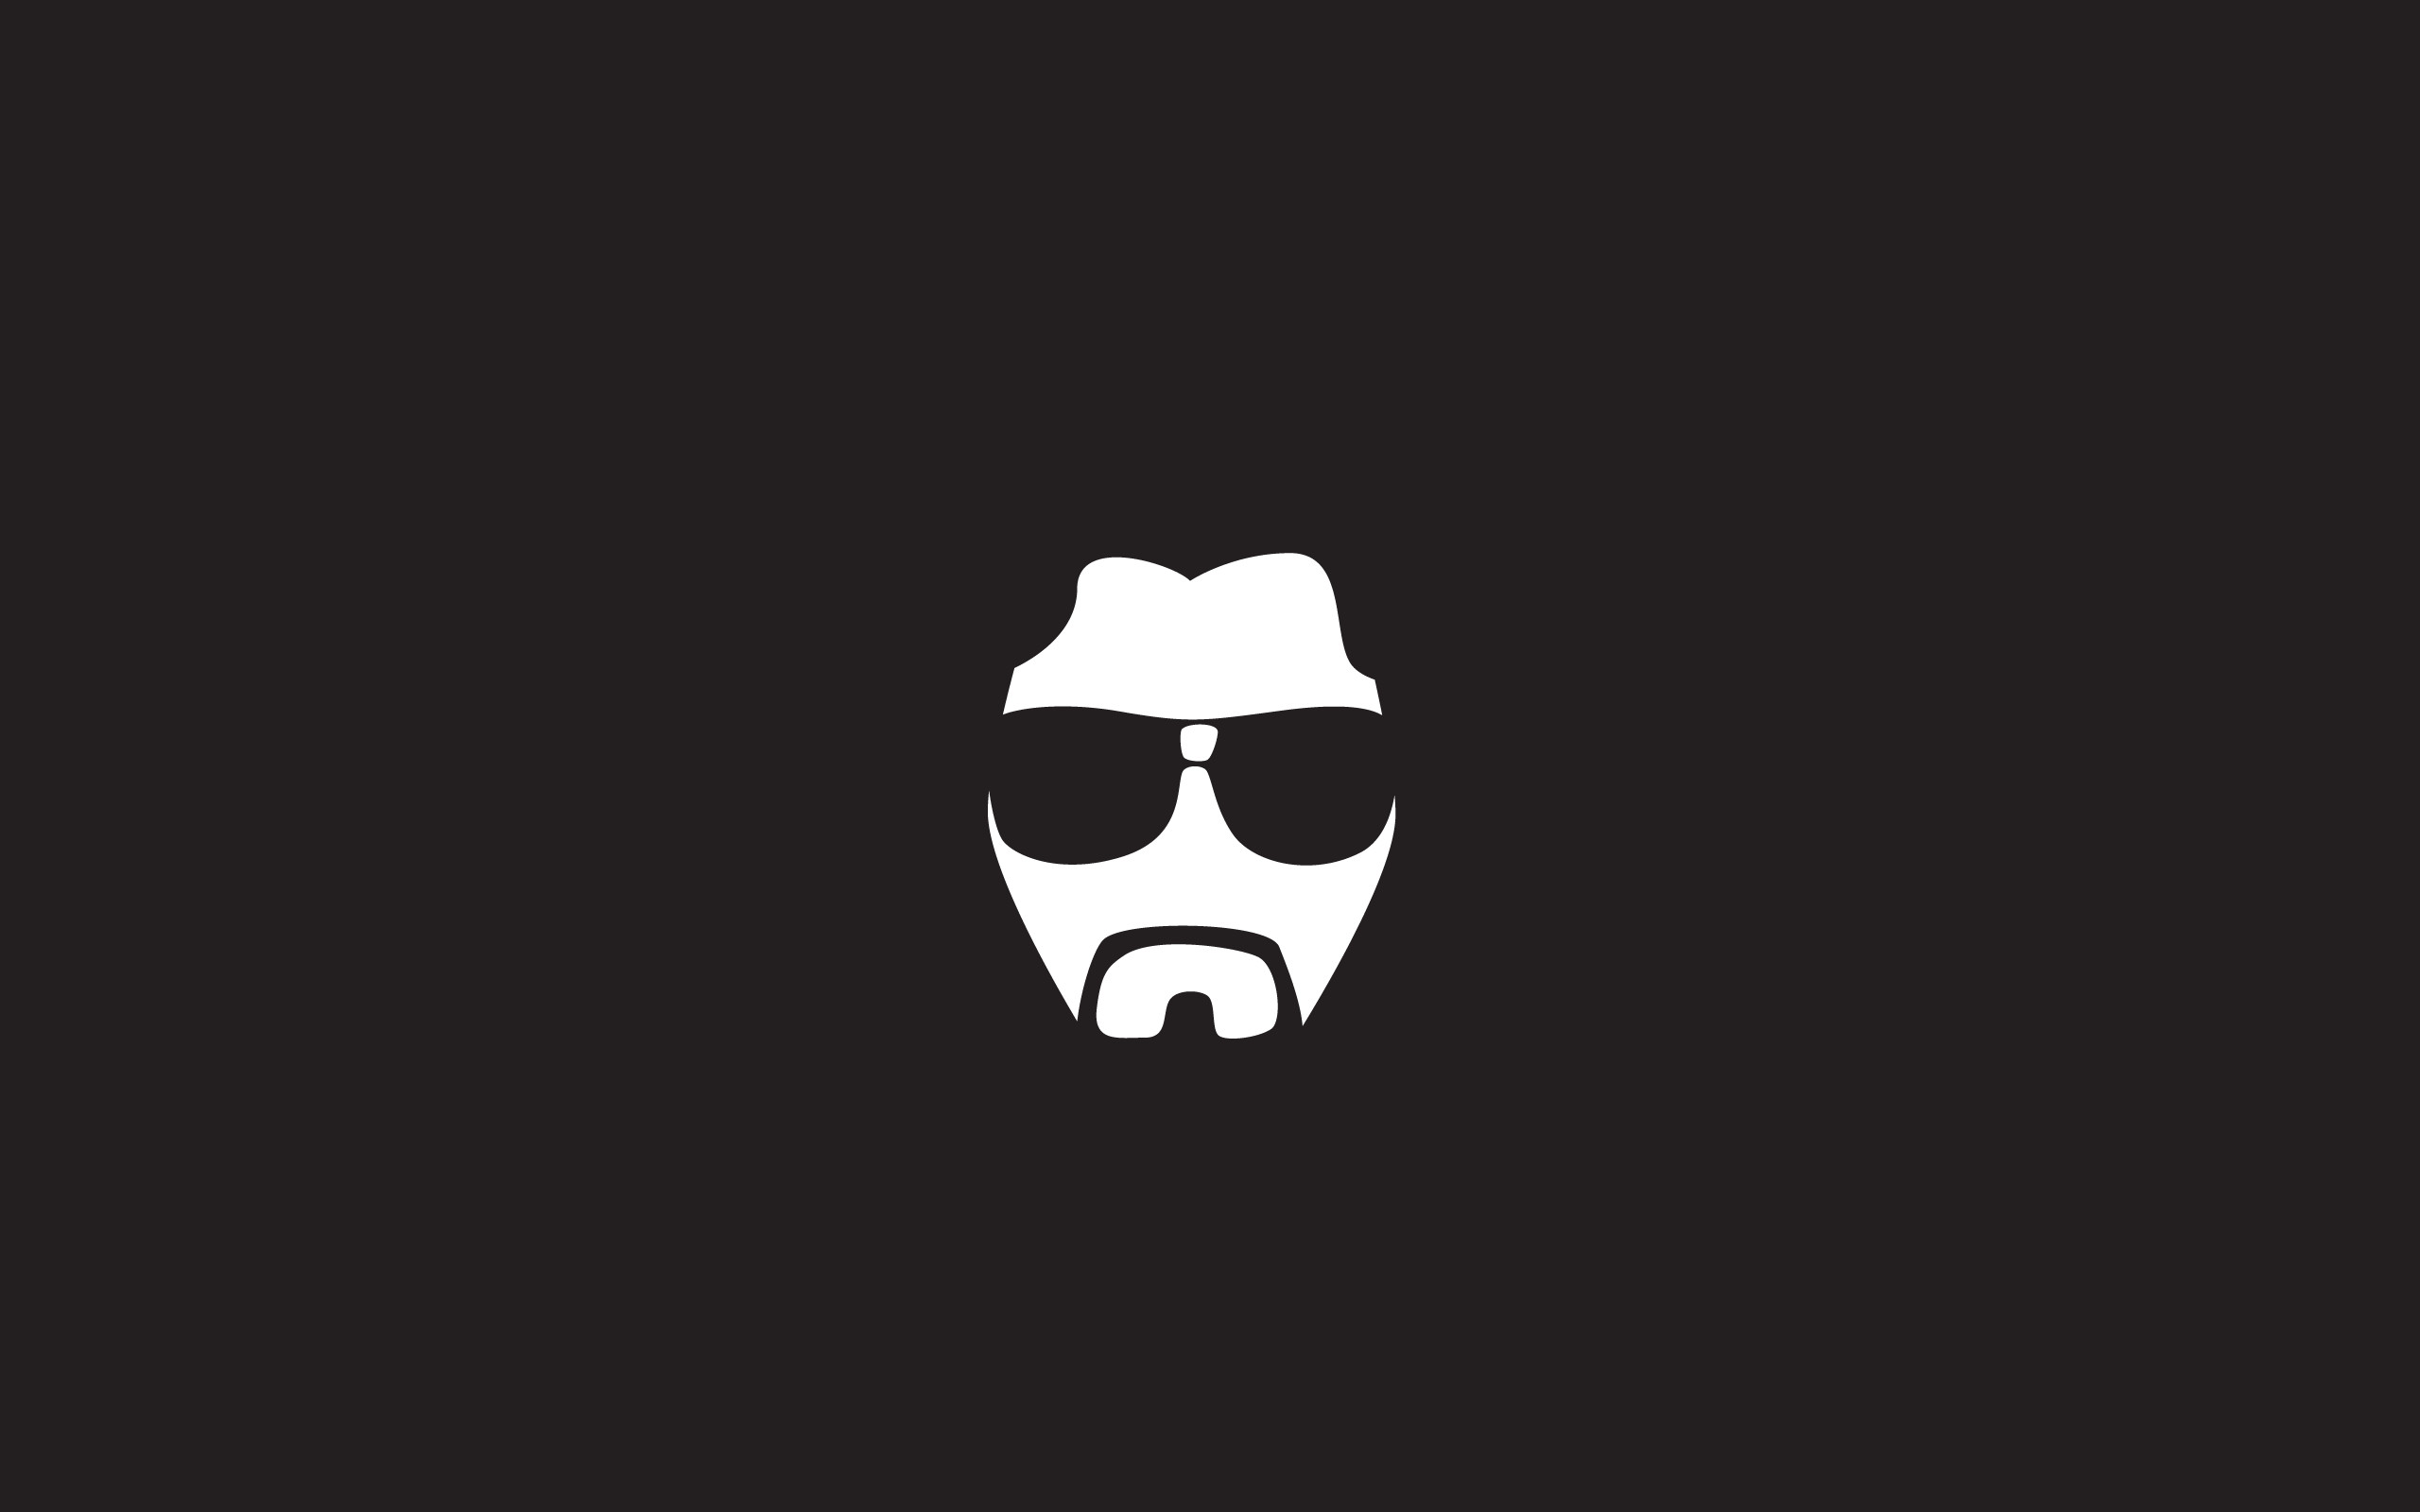 2560x1600 cool-simple-and-minimalist-desktop-wallpaper -the_dude_the_big_lebowski-cooked